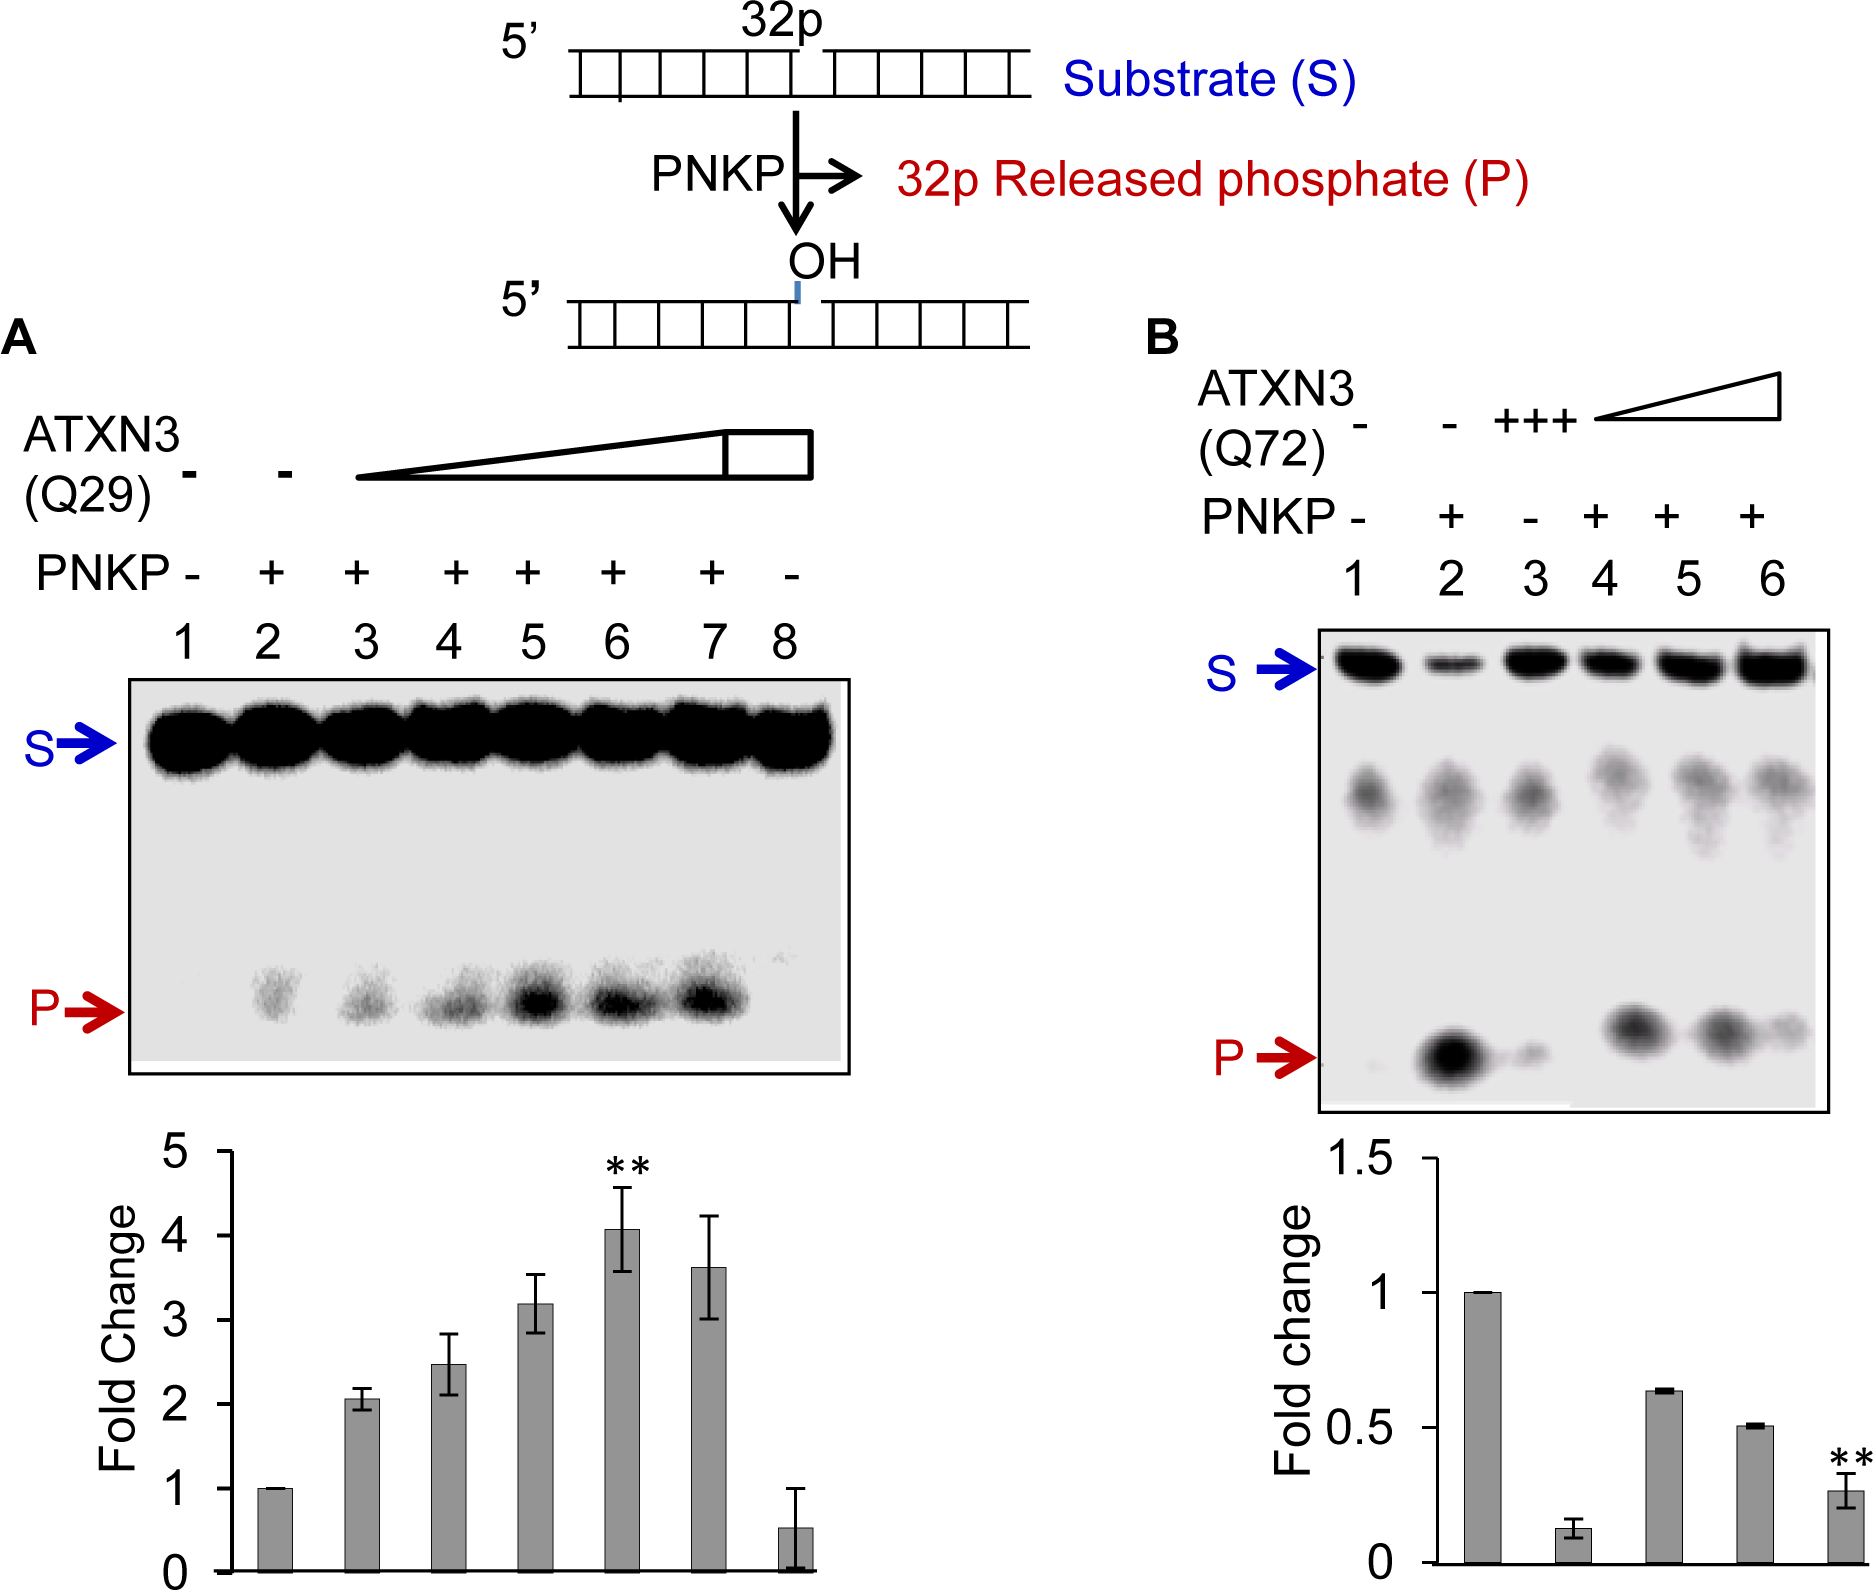 Effect of WT (Q29) or mutant (Q72) ATXN3 on PNKP's 3'-phosphatase activity.